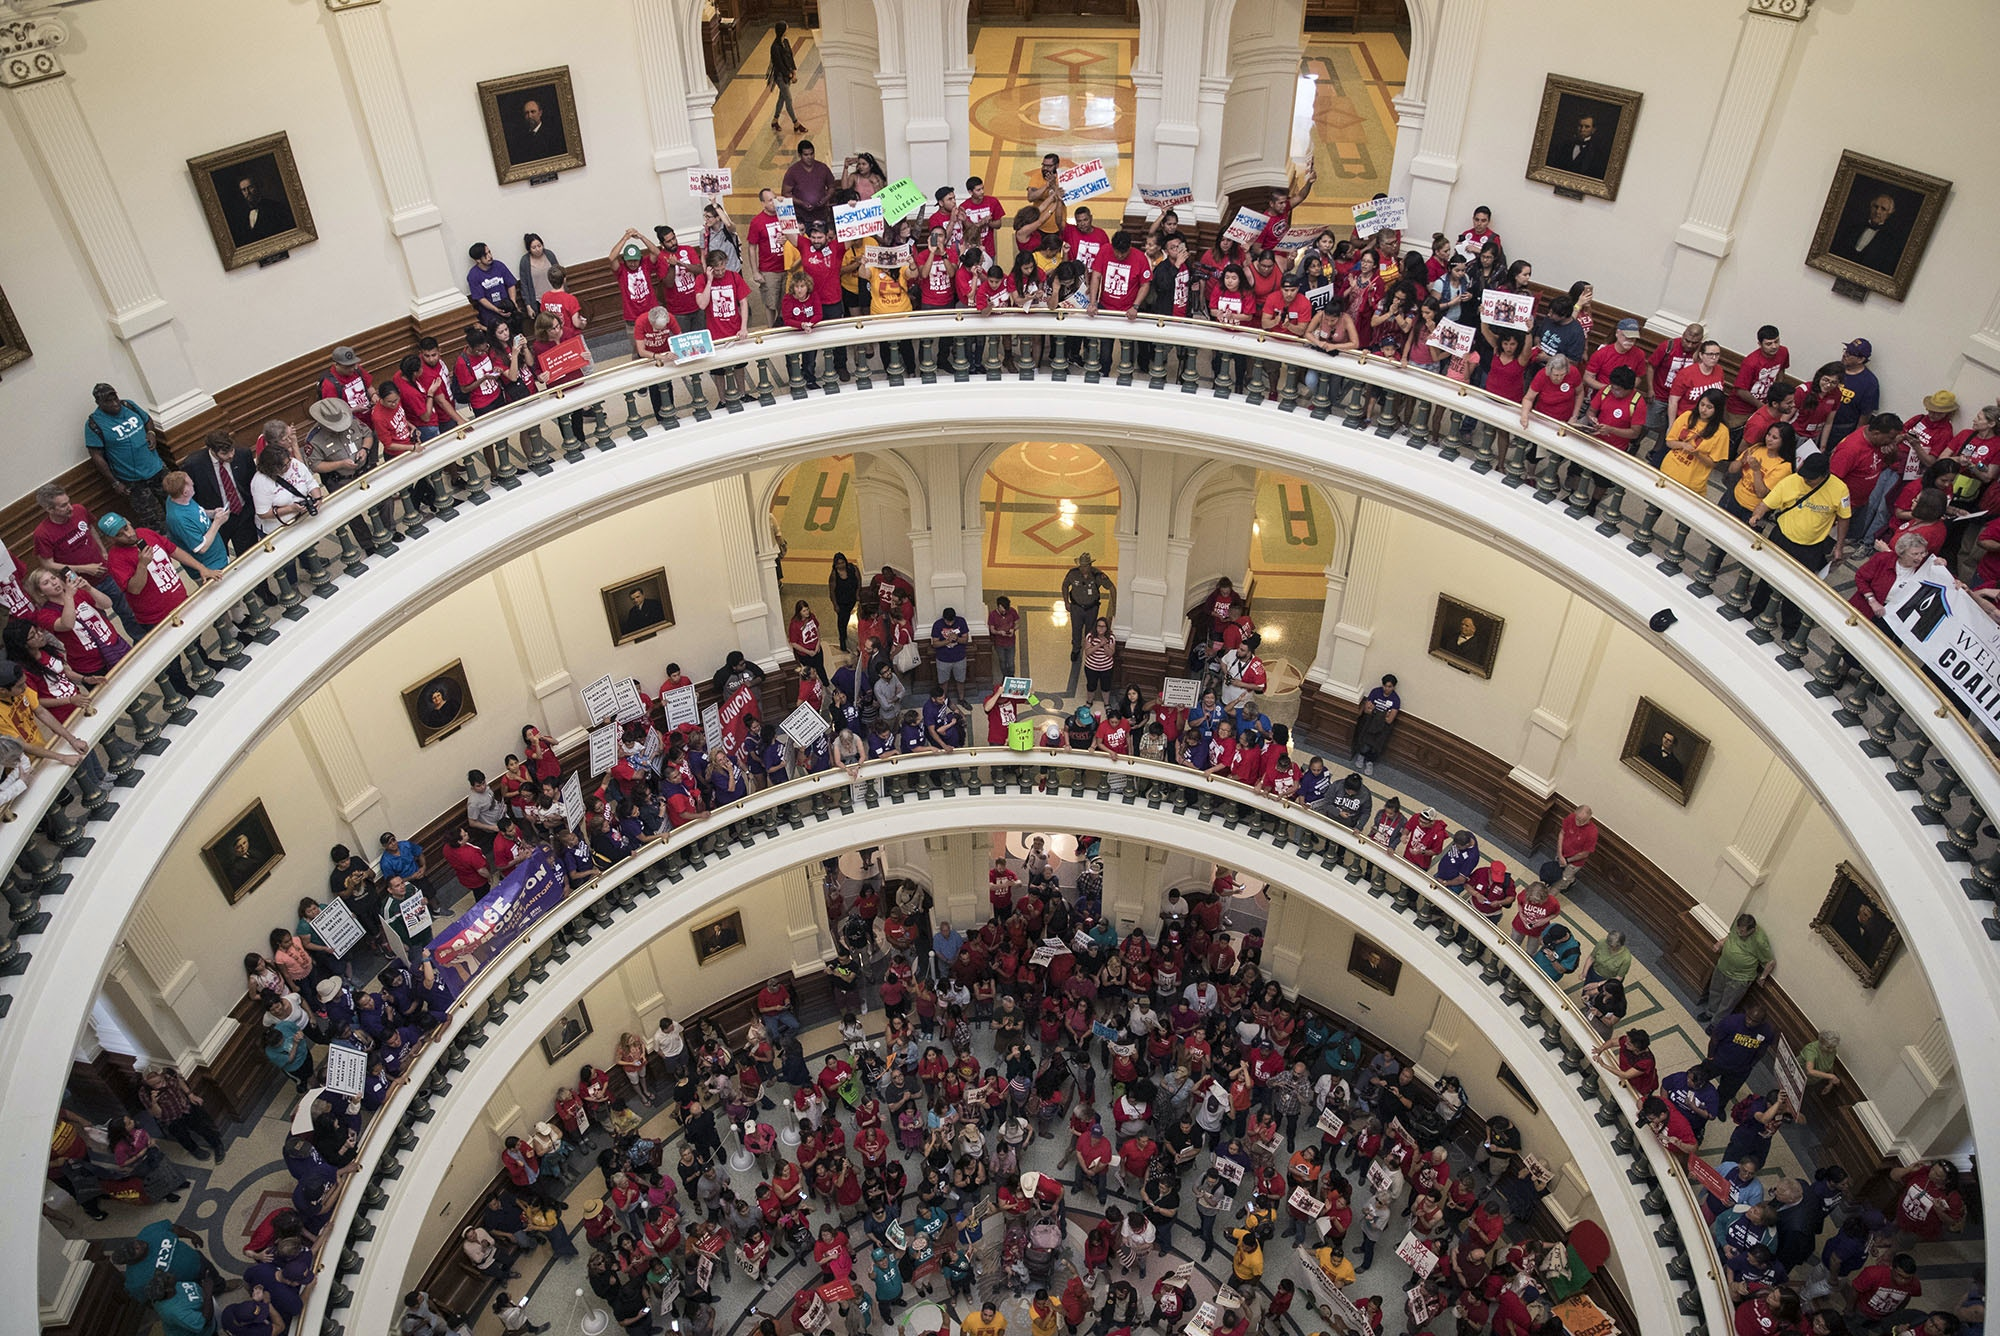 Hundreds of protesters line the balconies of the state Capitol rotunda in Austin on Monday, May 29, 2017, the last day of the legislative session, to protest Senate Bill 4. legislation already passed by Texas Gov. Greg Abbott that compels local police to enforce federal immigration law. (Ricardo Brazziell/Austin American-Statesman via AP)